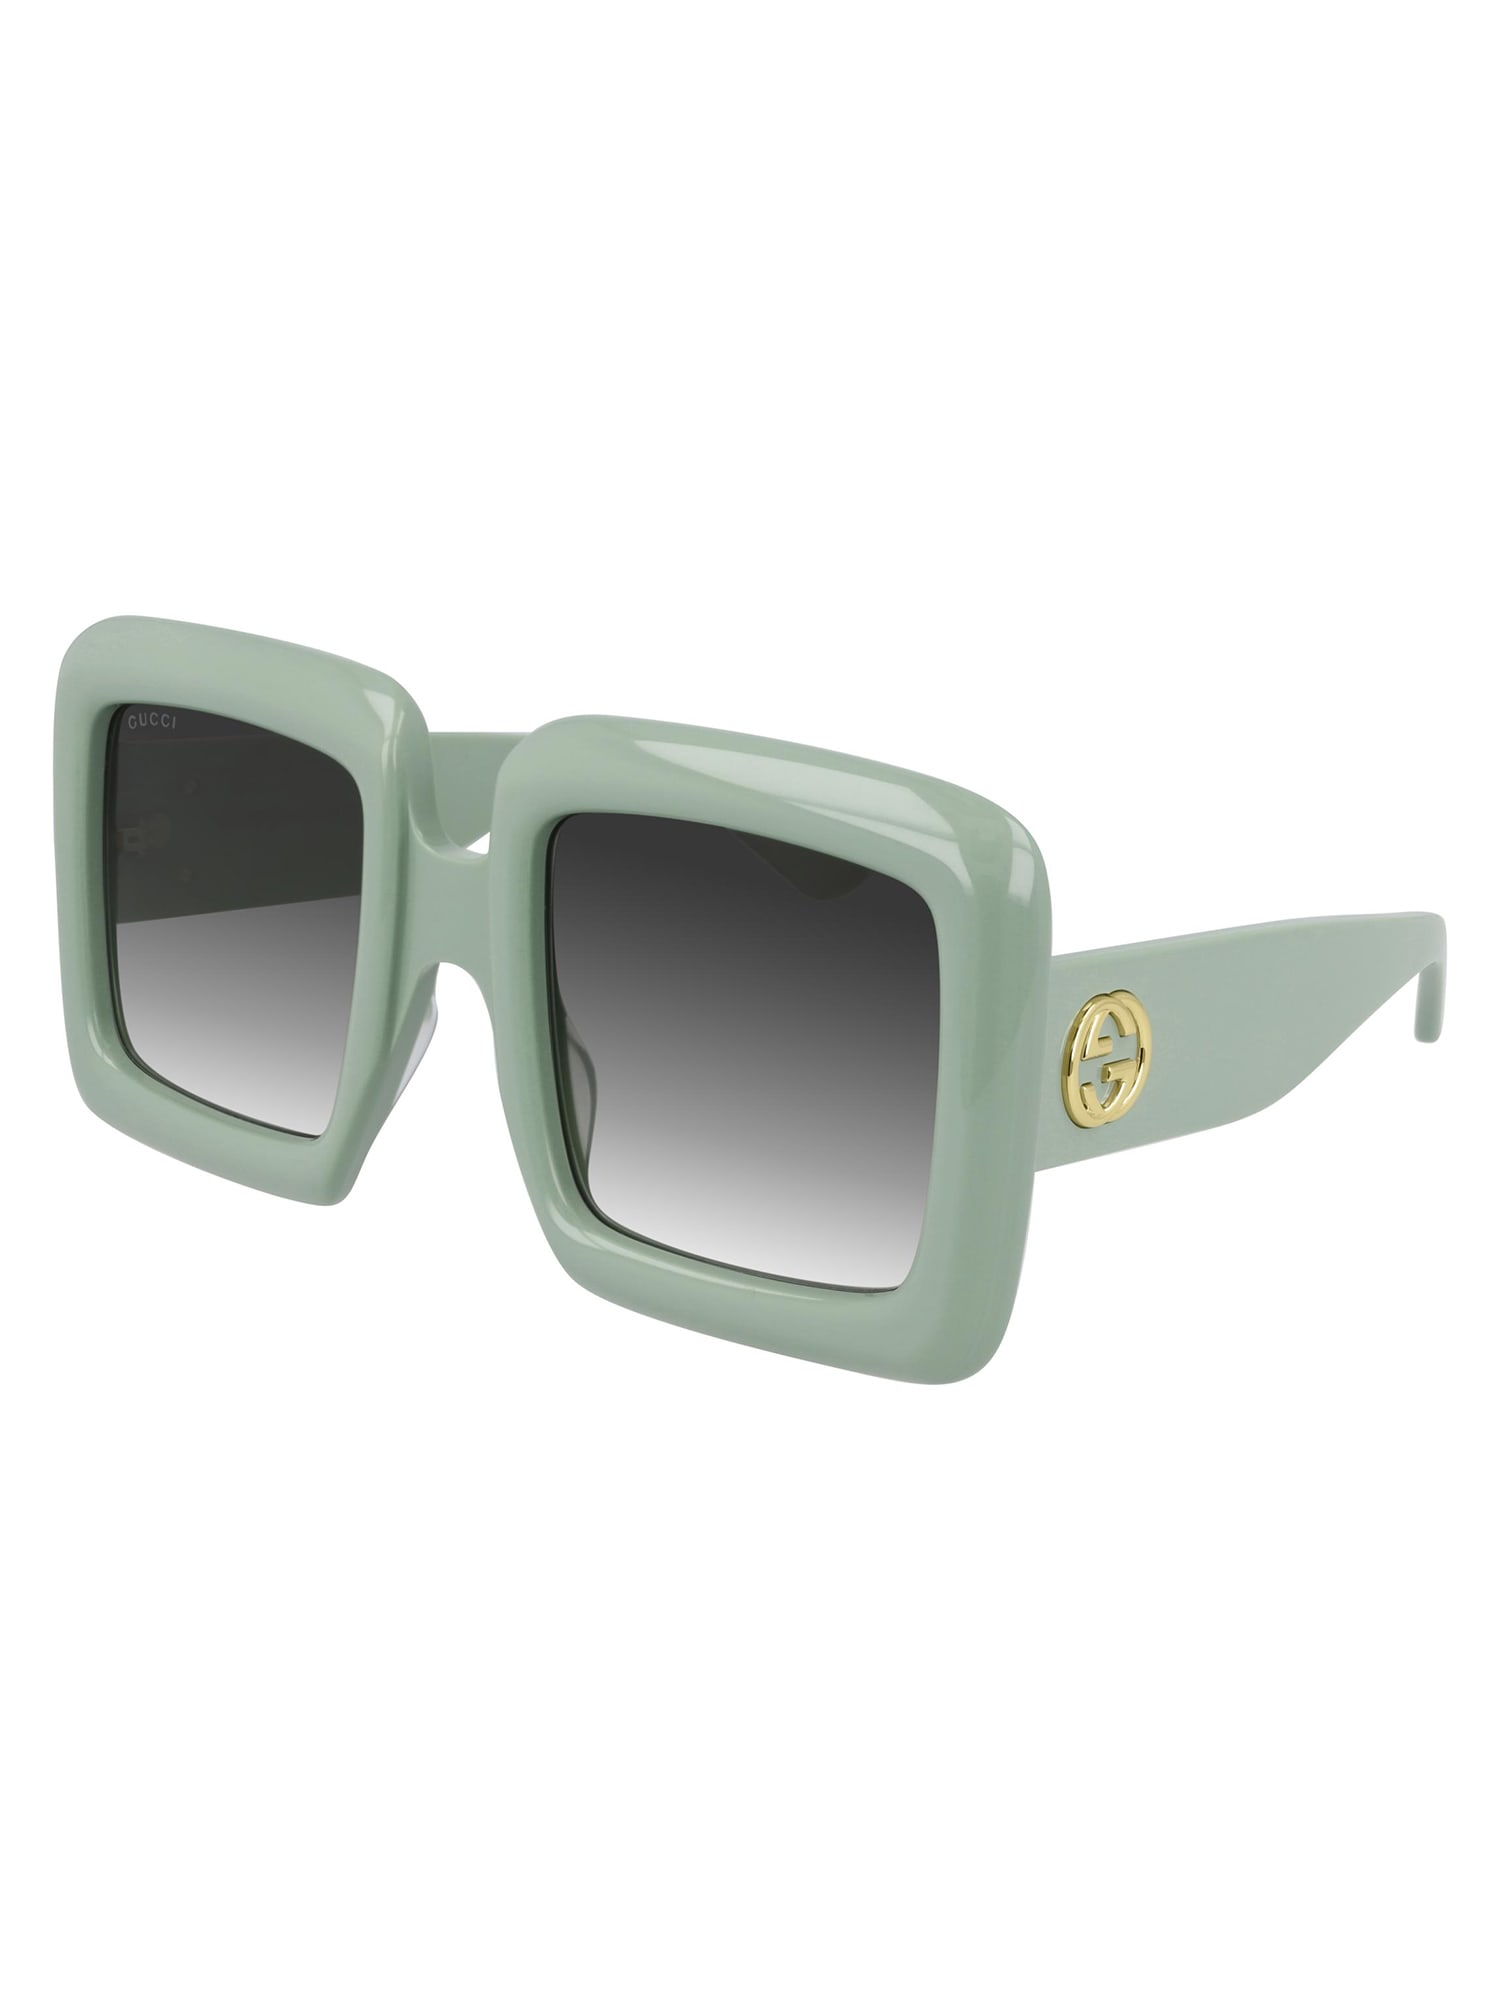 Gucci Gg0783s Sunglasses In Green Green Green